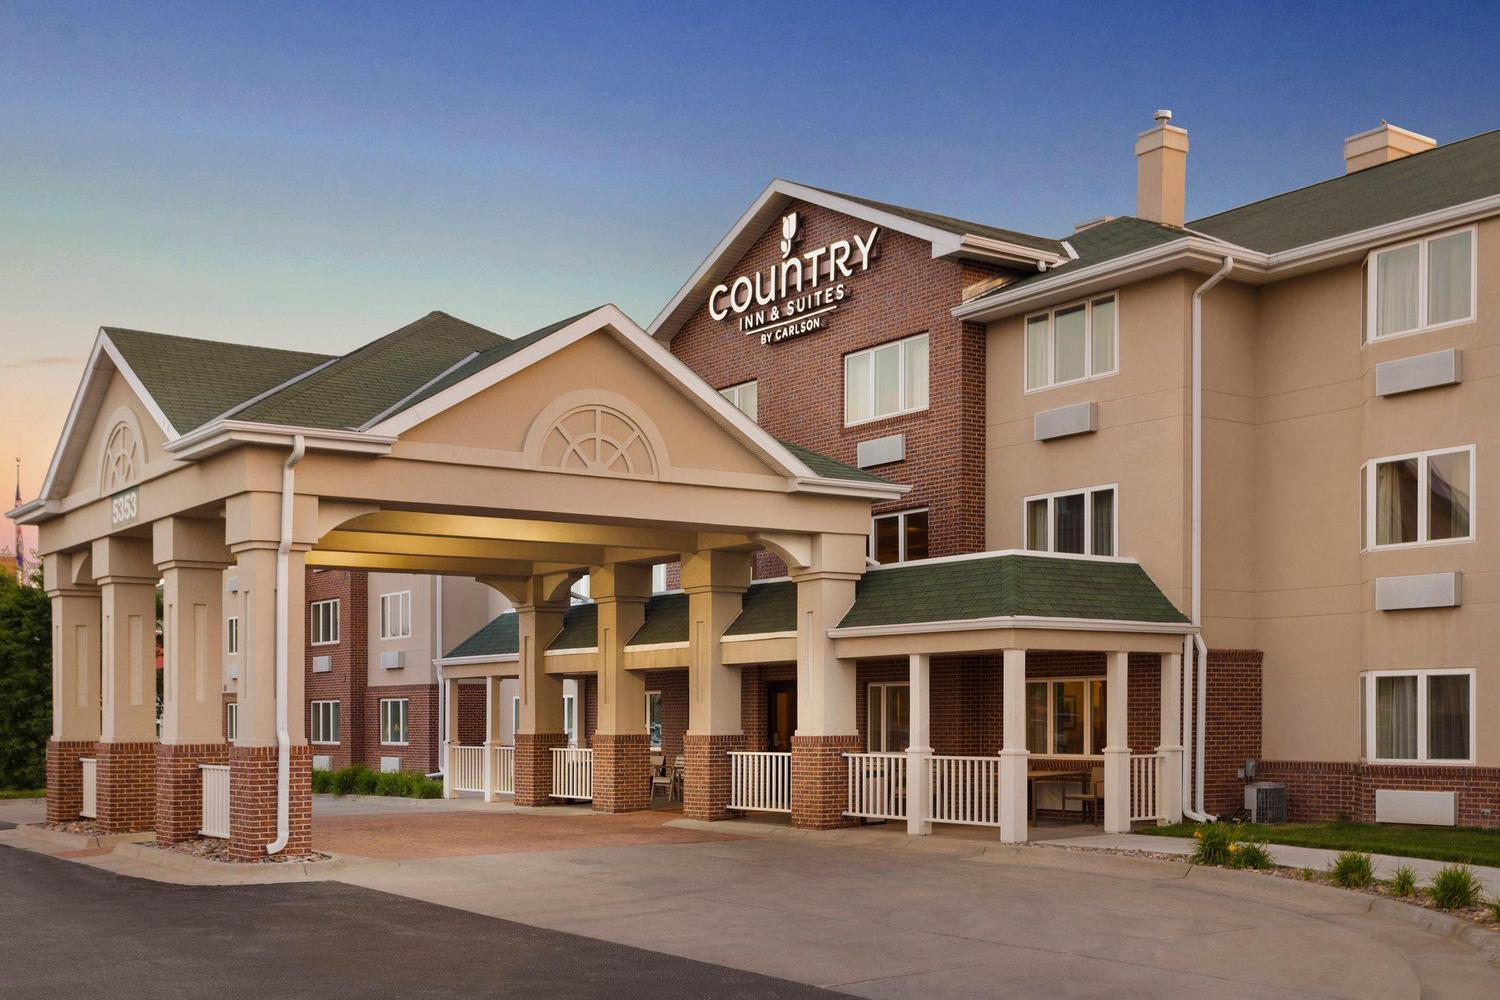 Country Inn And Suites  Lincoln North Hotel And Conference Center  Lincoln  Ne Jobs